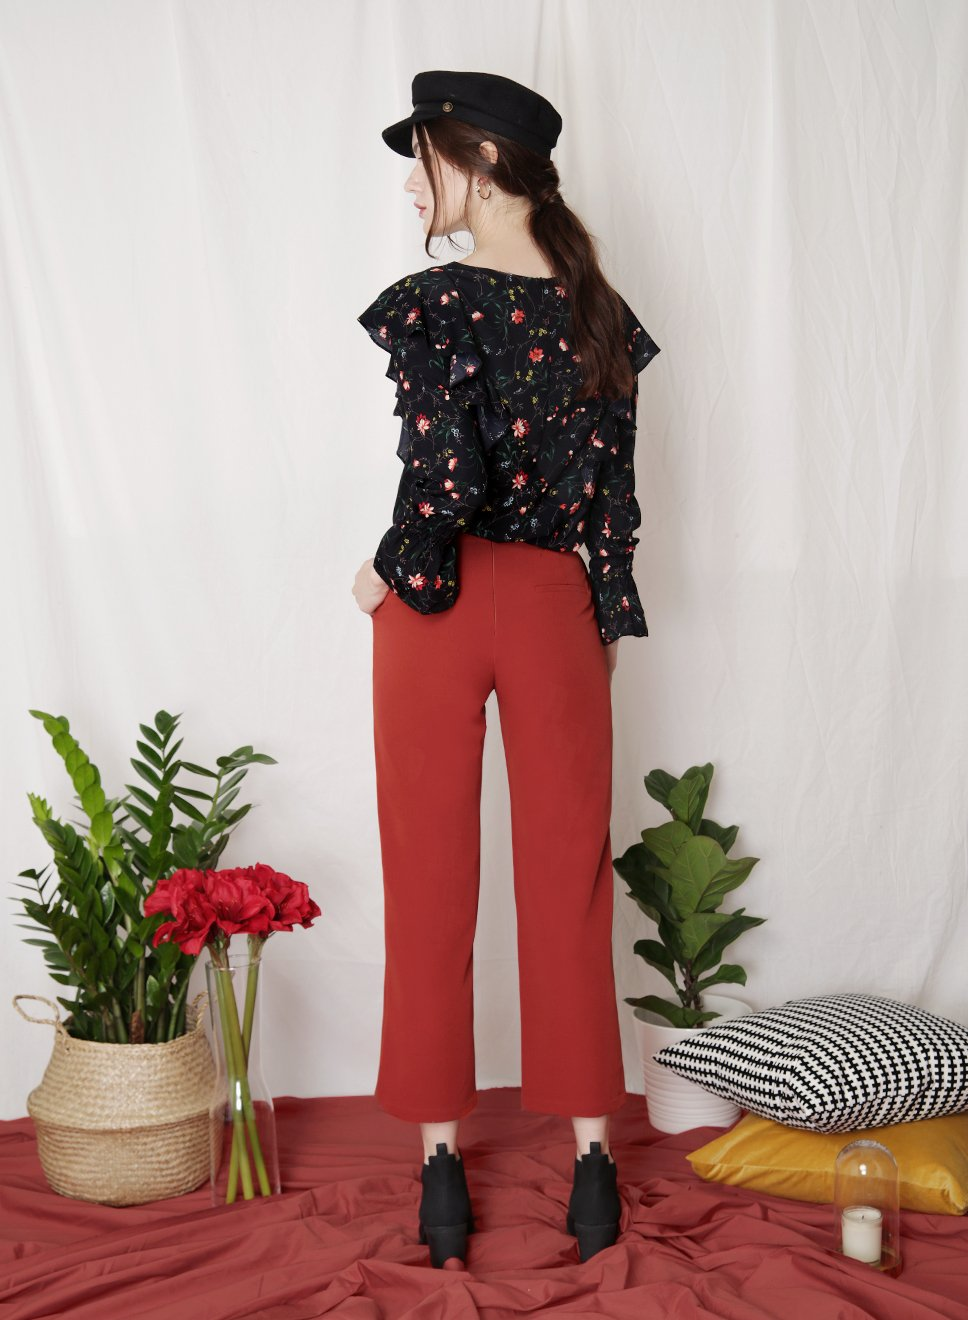 INDULGE Floral Ruffled Top (Black) at $ 34.50 only sold at And Well Dressed Online Fashion Store Singapore